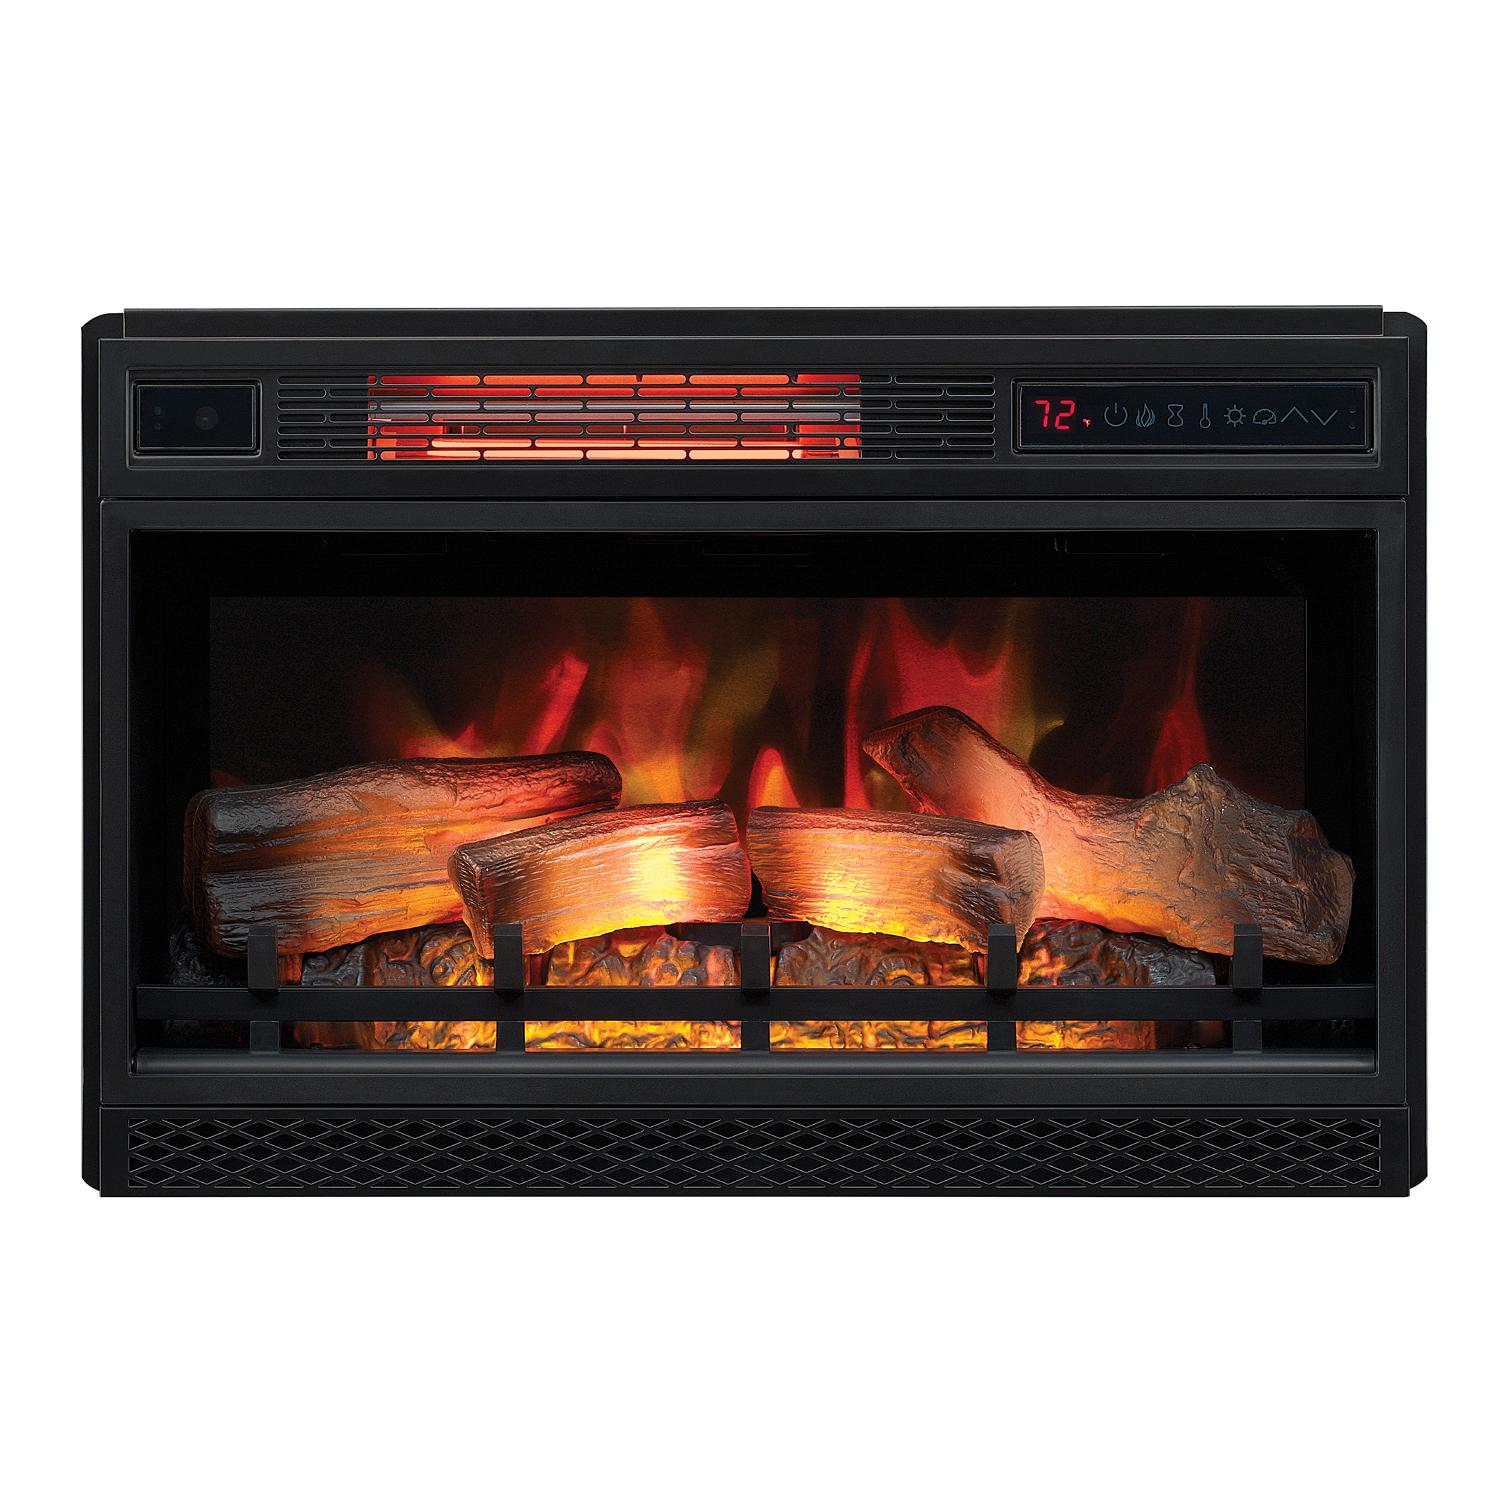 "Classicflame Spectrafire 26"" 3d Infrared Quartz Electric Fireplace Insert With Safer Plug And Safer Sensor - 26ii042fgl"